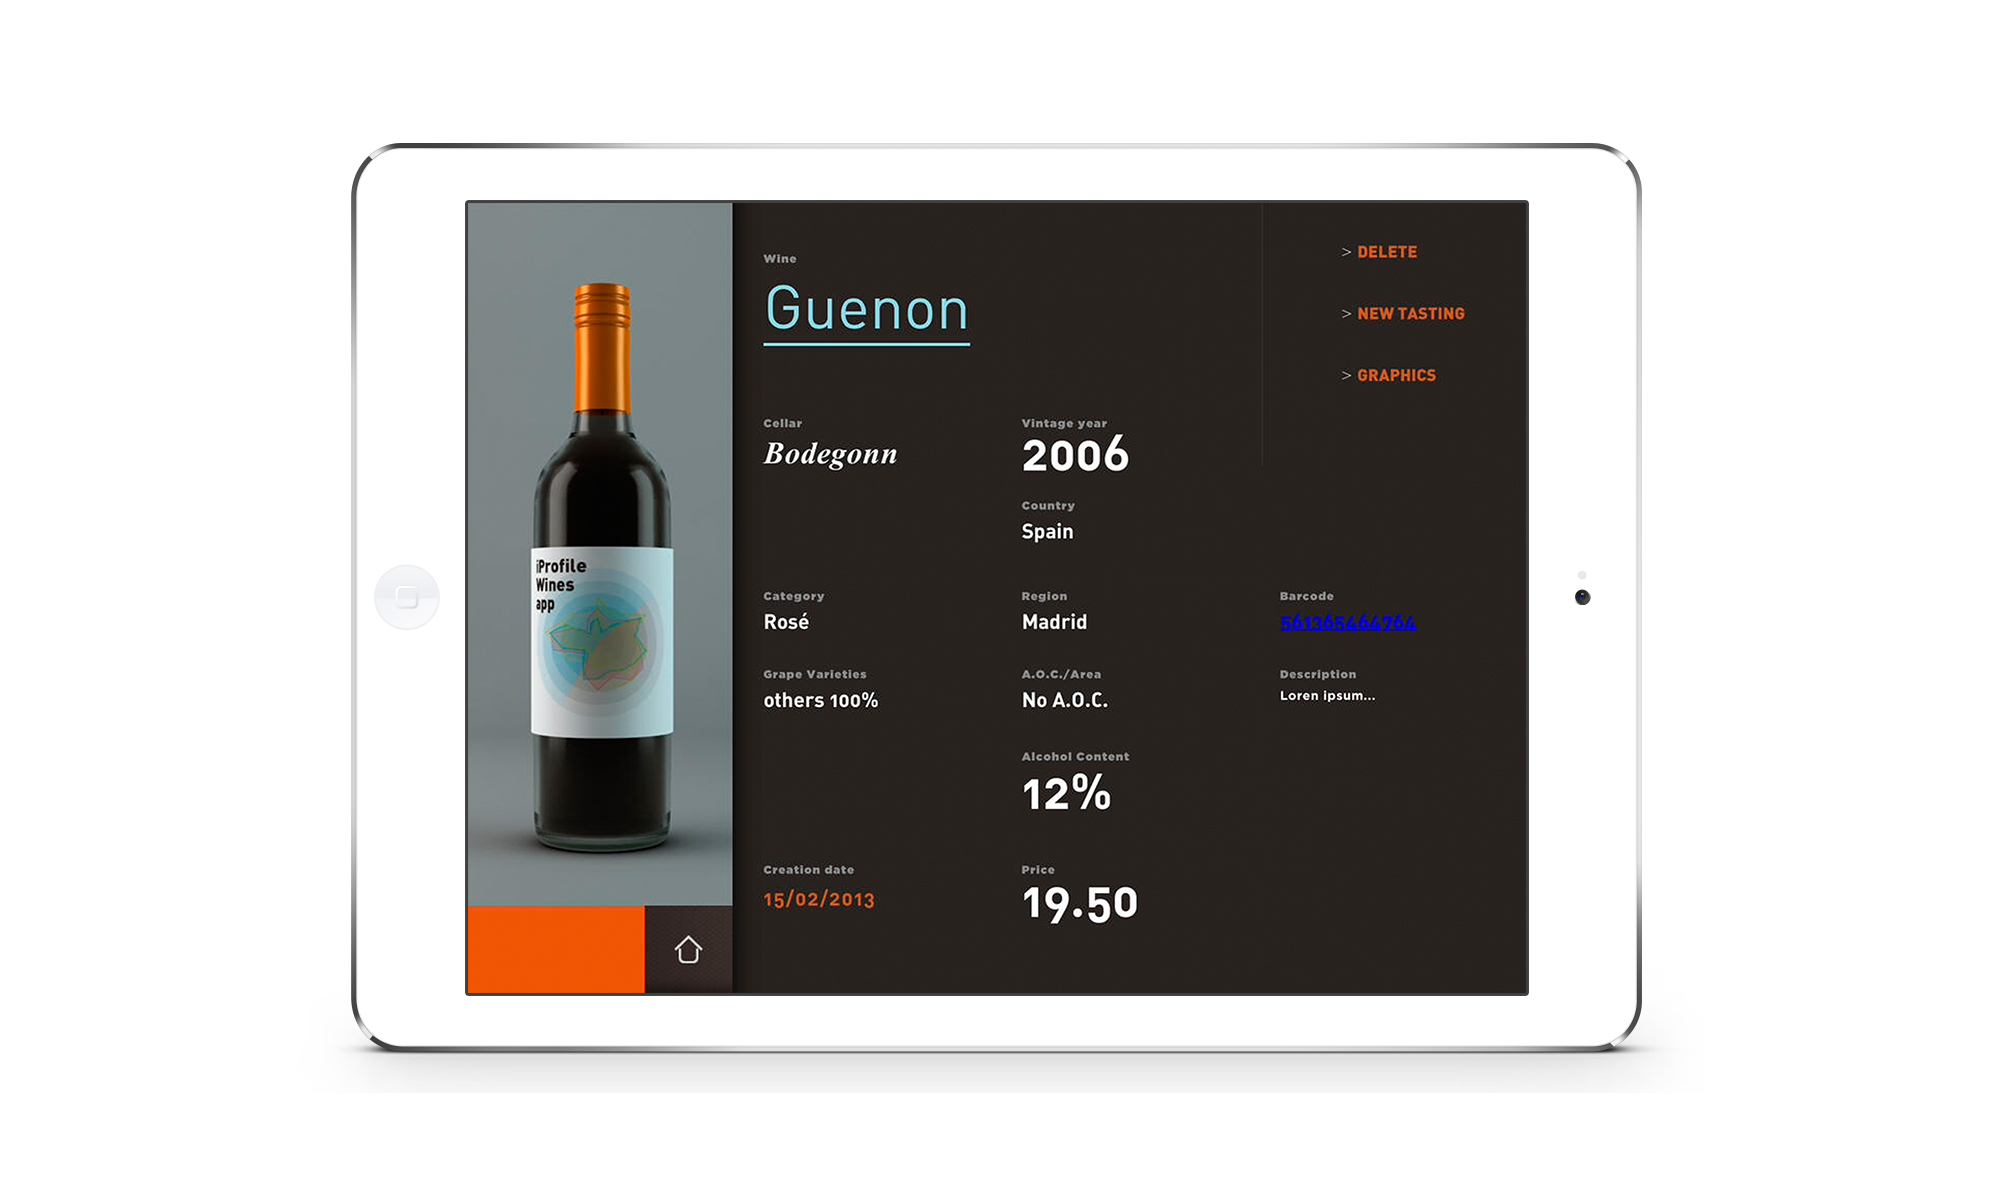 iProfile Wines: desarrollo de apps para iPad con bouquet